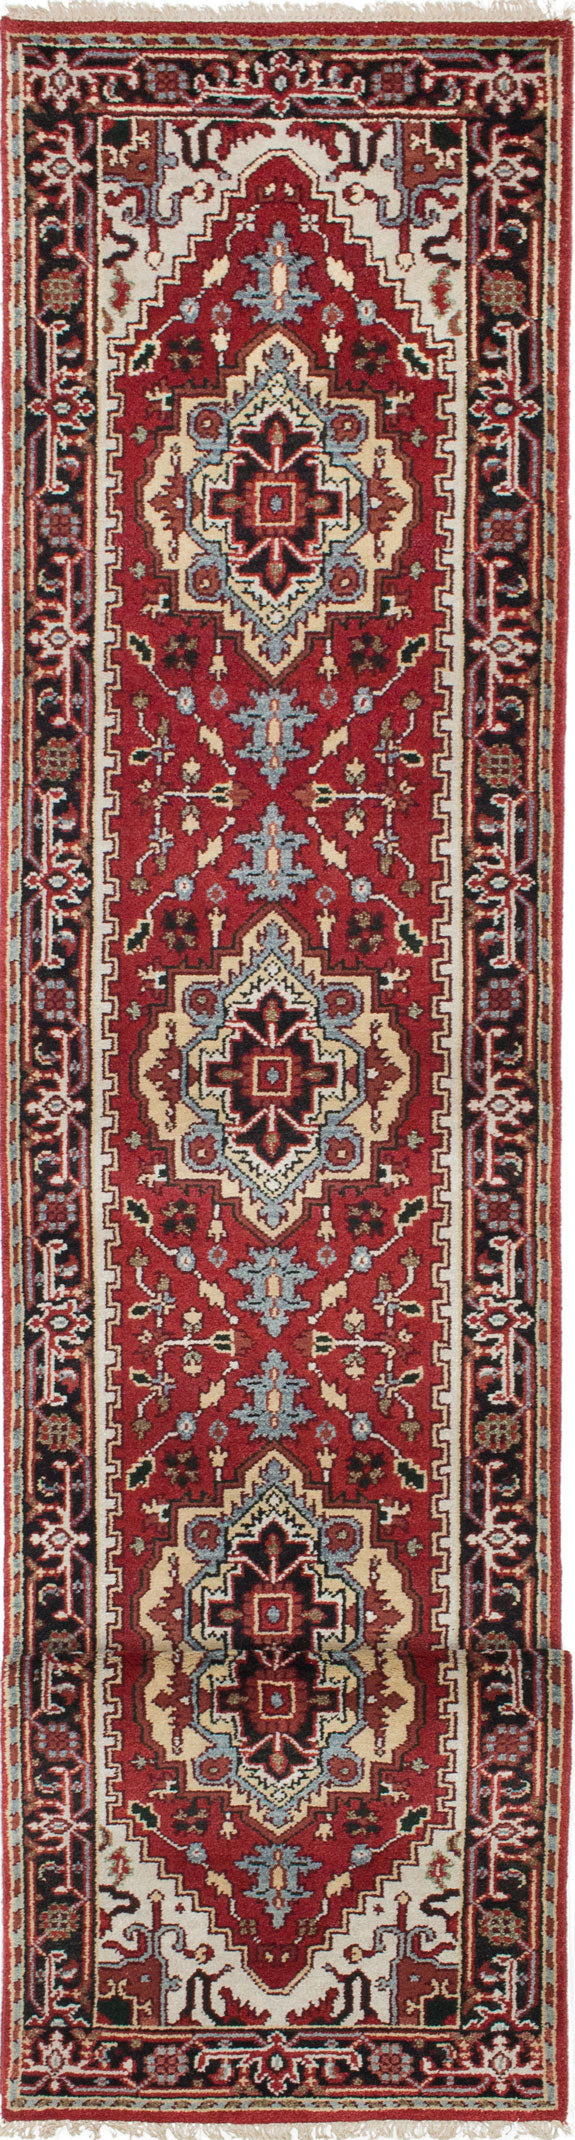 "Hand-knotted Indian Floral  Traditional Serapi-Heritage Runner rug  Dark Orange 2'5 x 13'10"" """